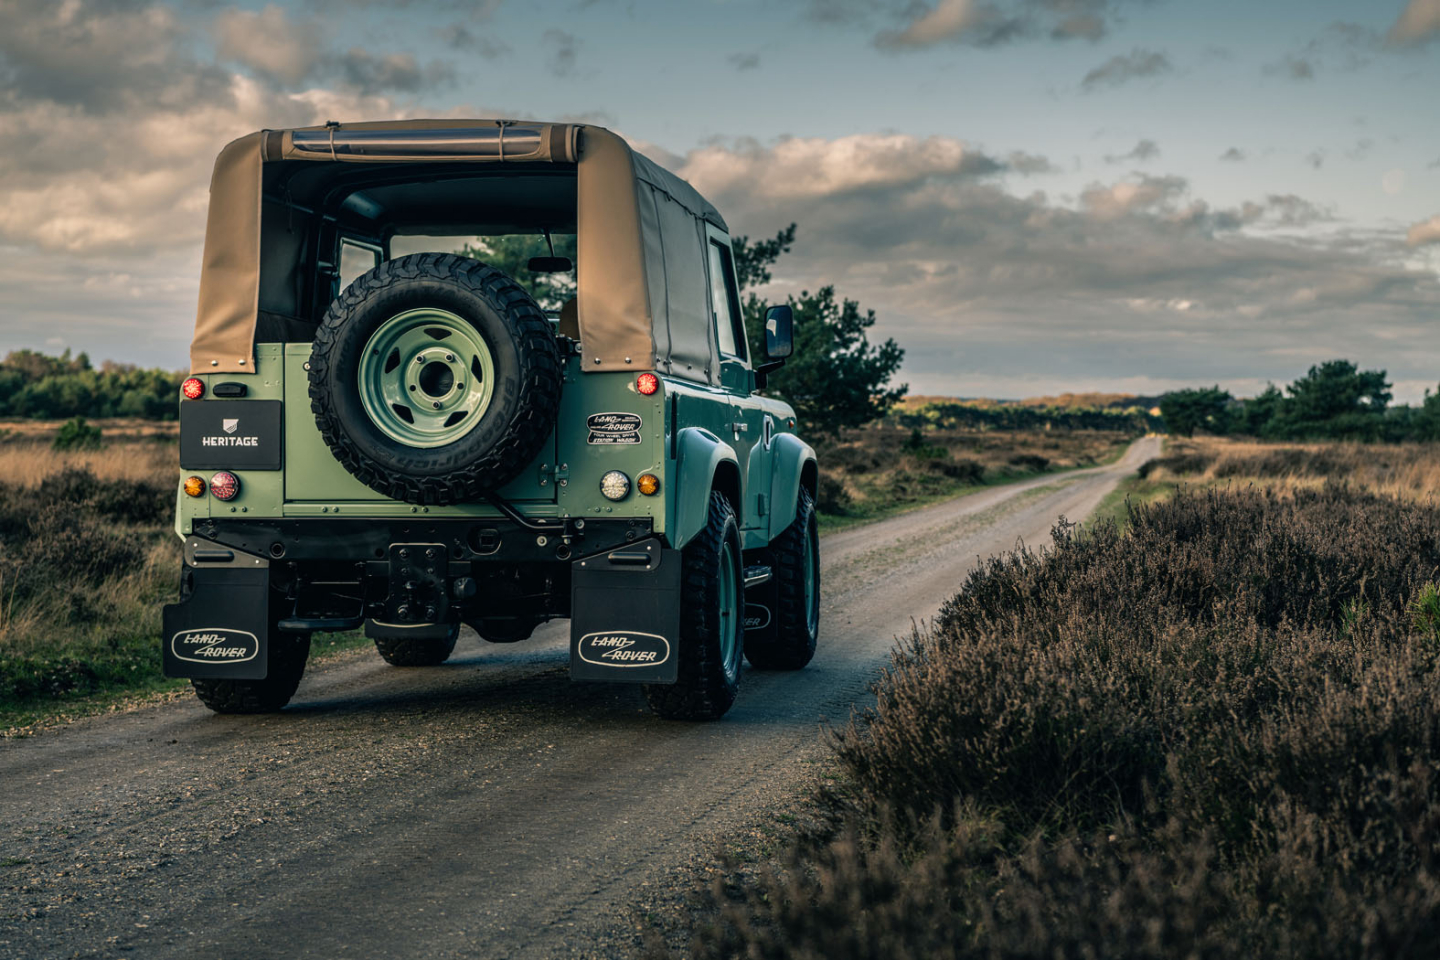 Land Rover Defender for Heritage Customs